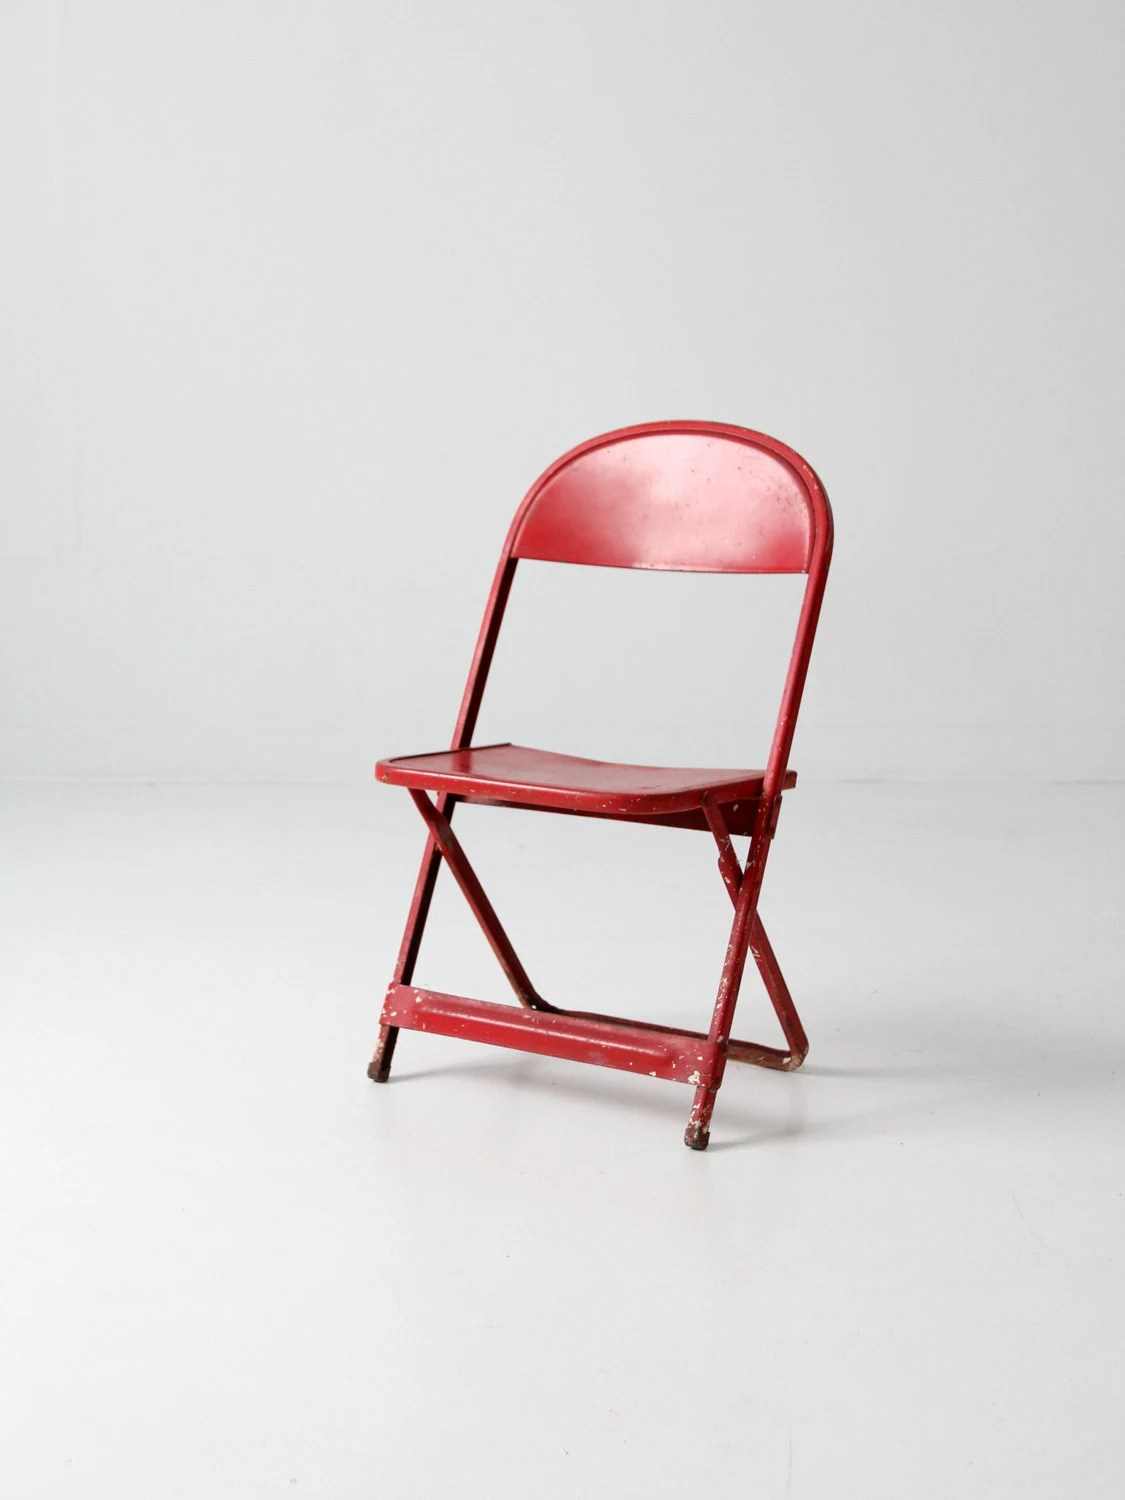 Kids Folding Chair Vintage Children 39s Chair Red Folding Chair